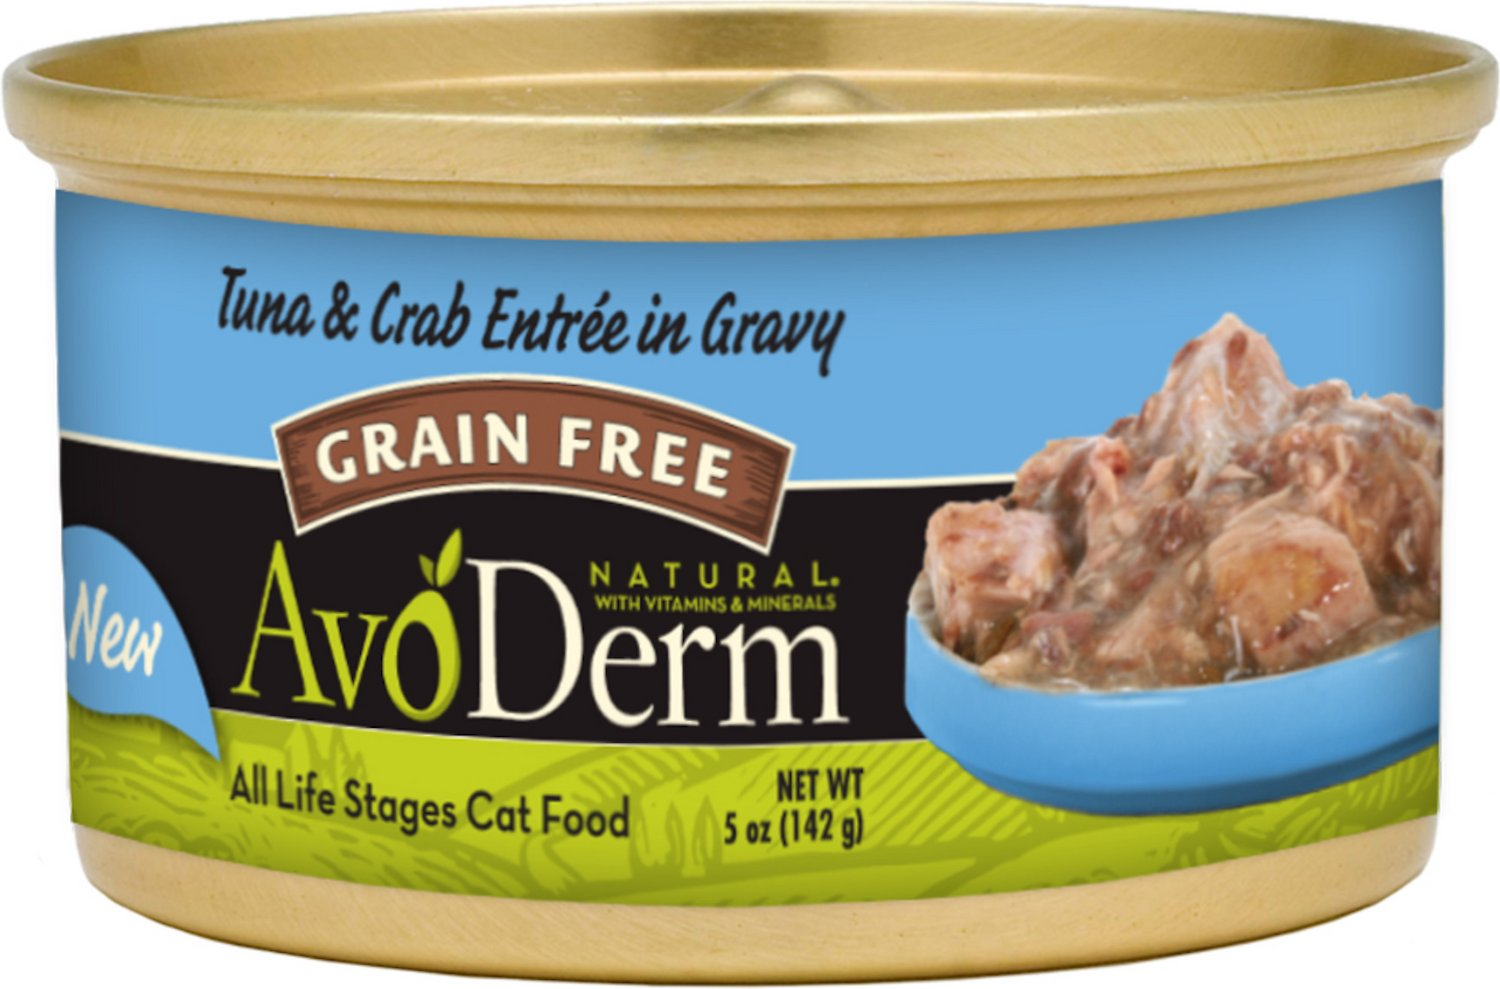 AvoDerm Natural Grain-Free Tuna & Crab Entree in Gravy Canned Cat Food, 3-oz